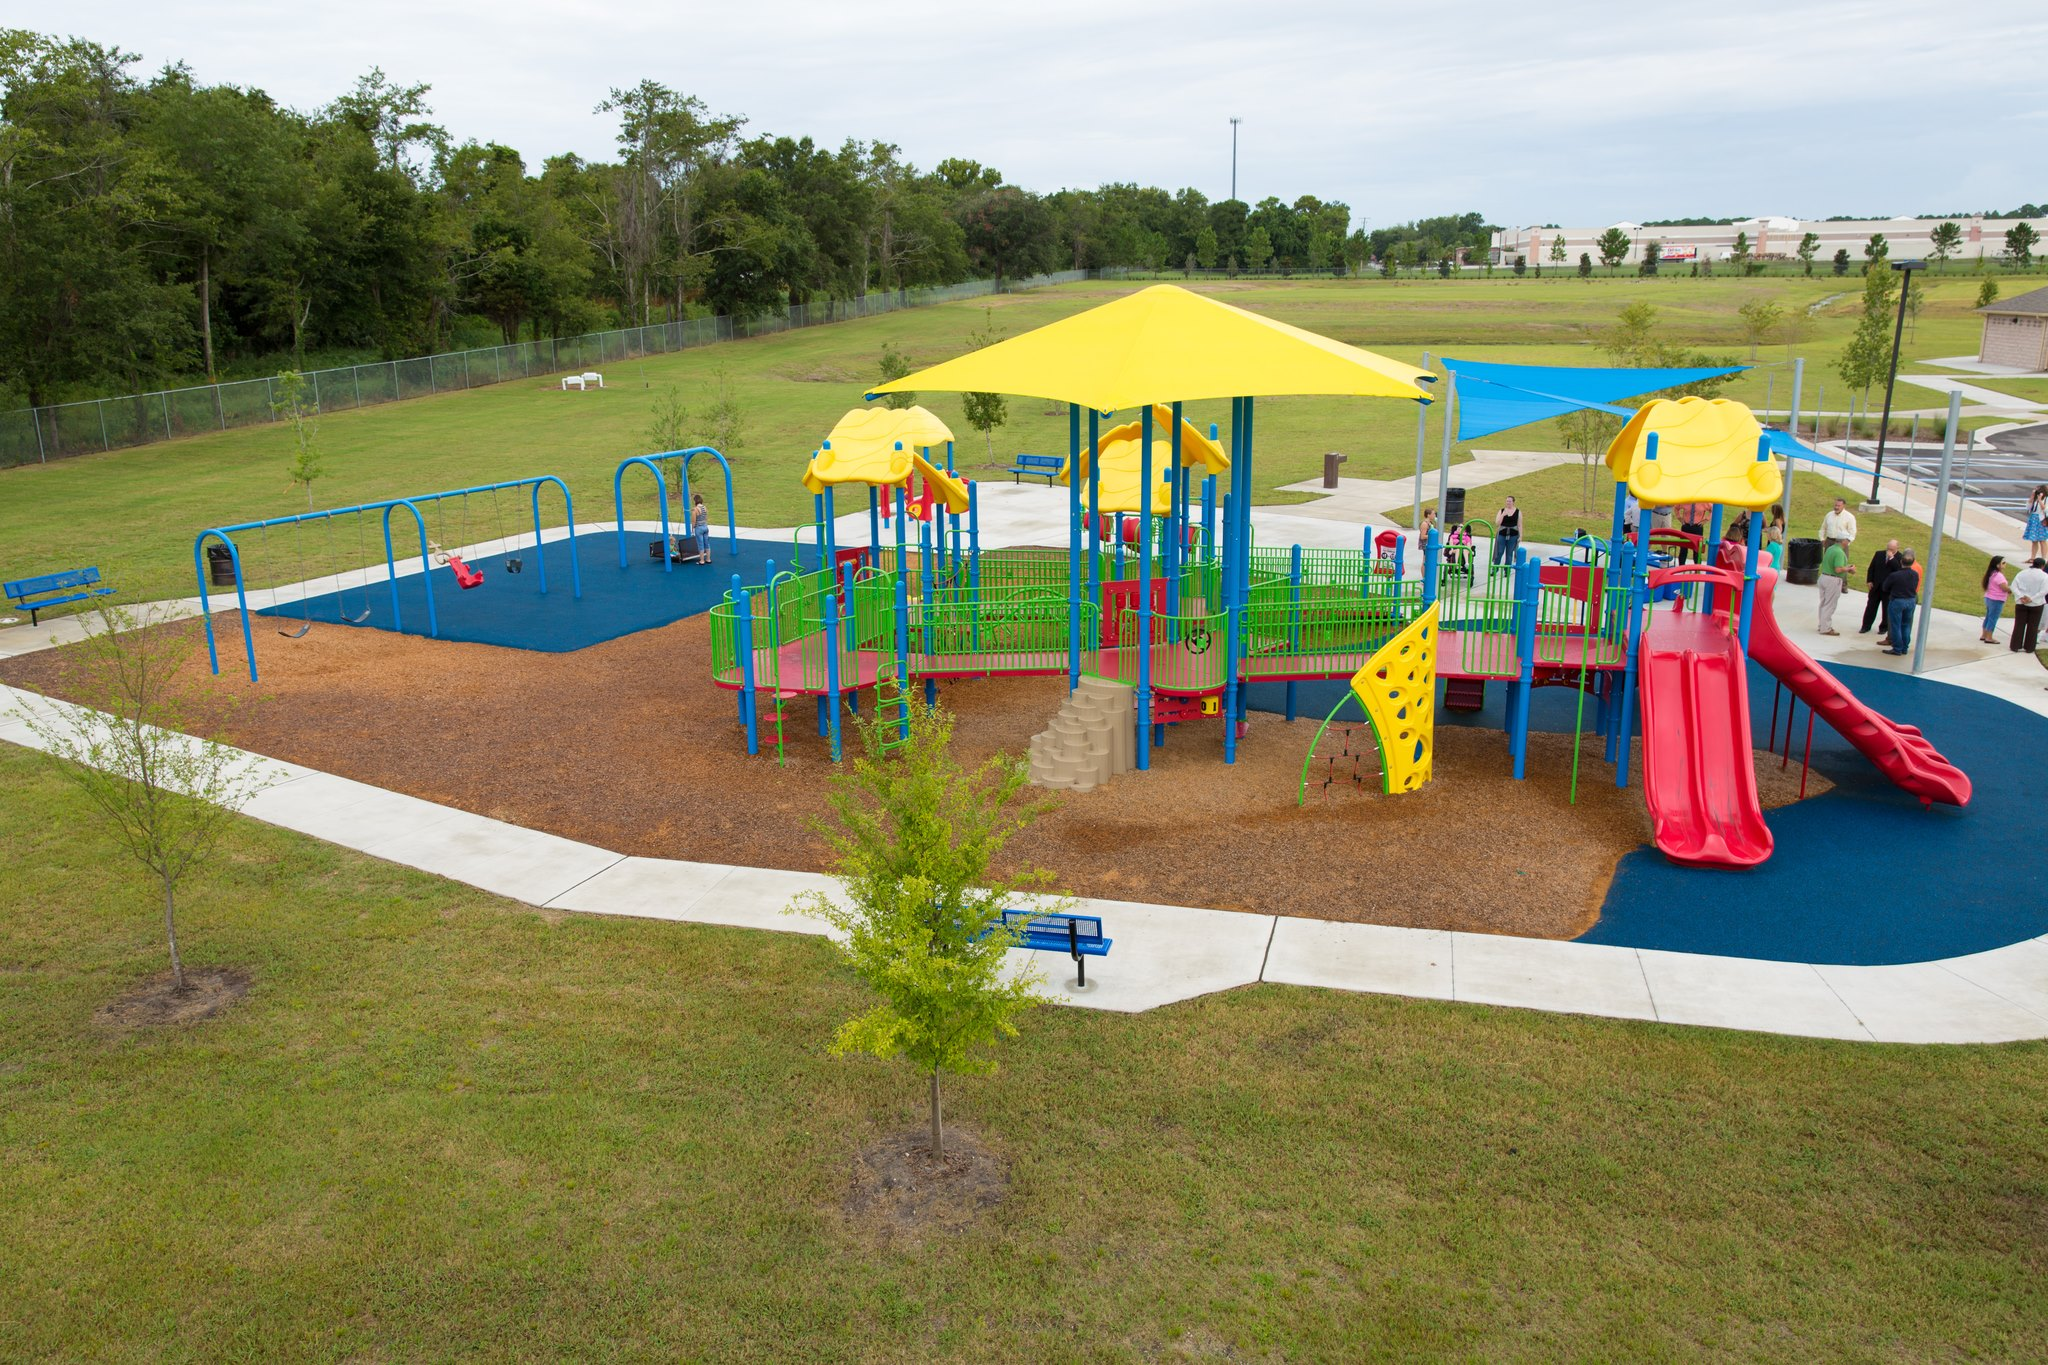 Fall Surfacing Amp Containment Borders Bliss Products And Services Commercial Playground And